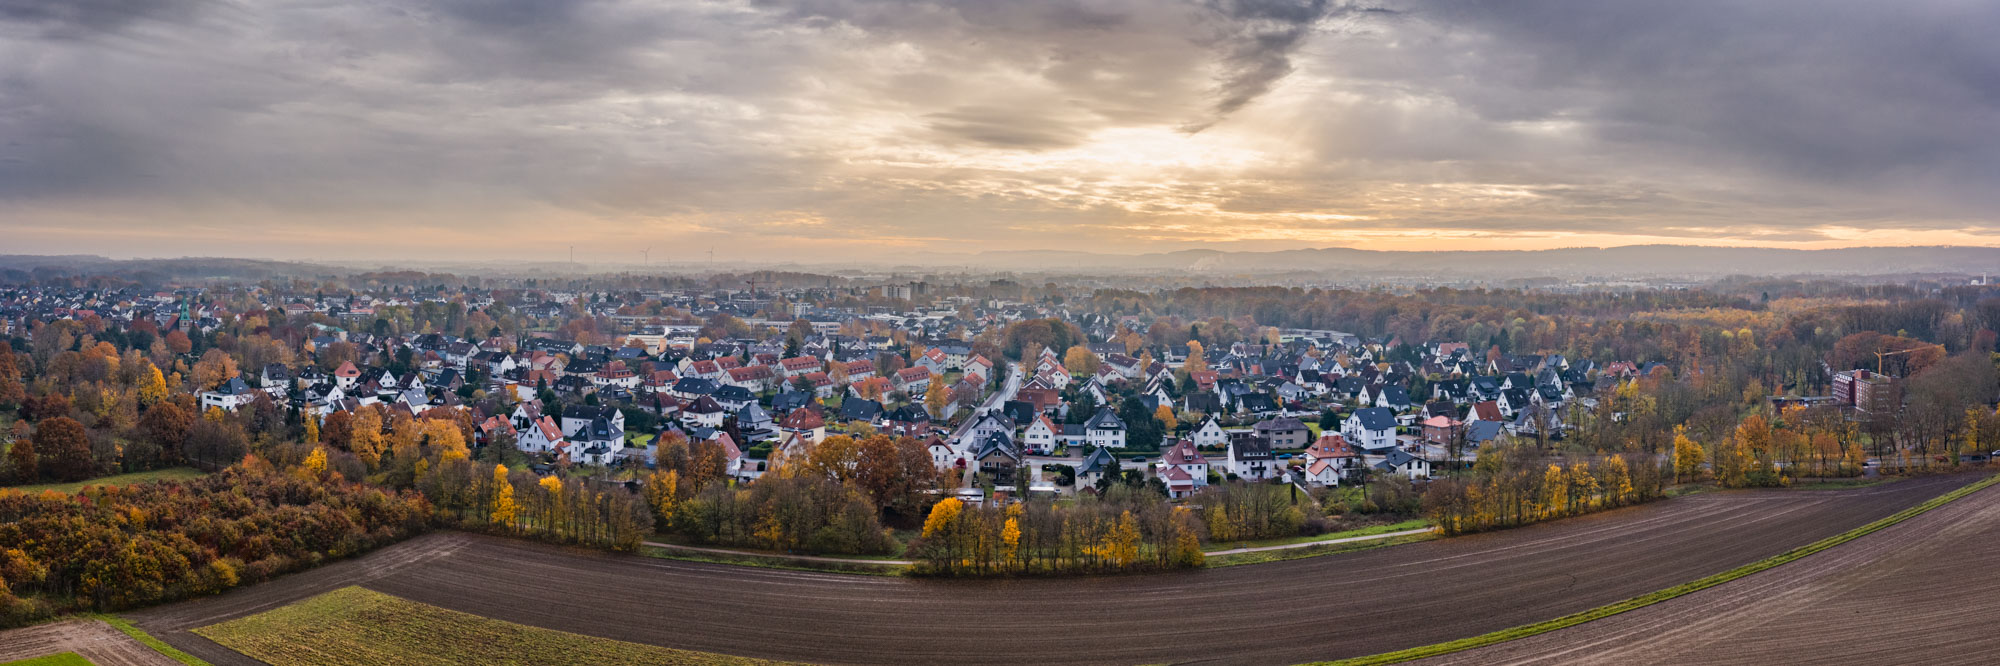 Autumn sky over Bielefeld Heben in November 2019.